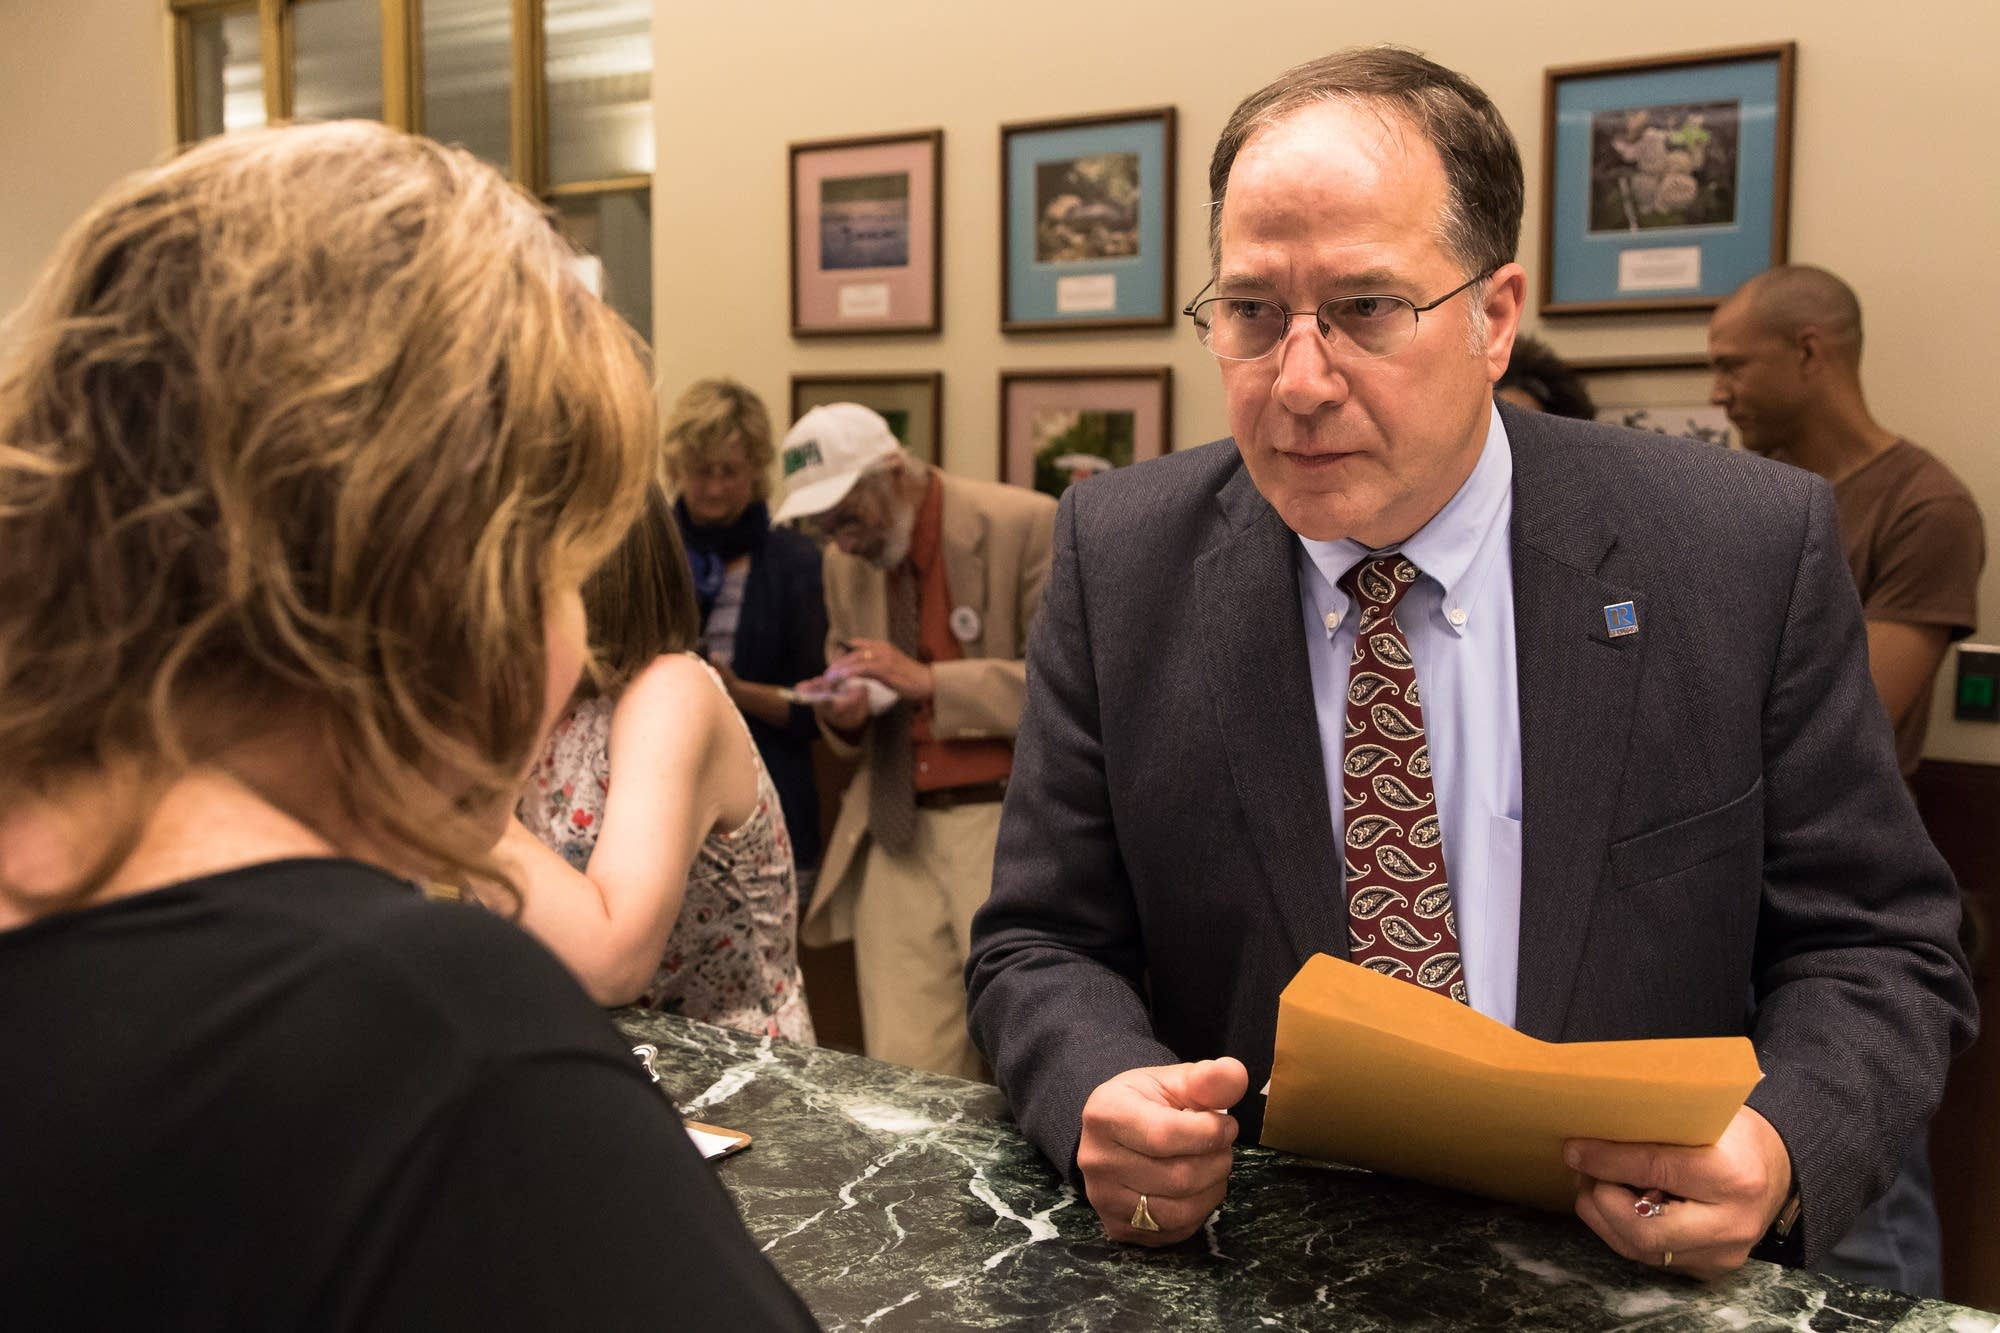 DFL Frank Nelson Drake files to run for congress.